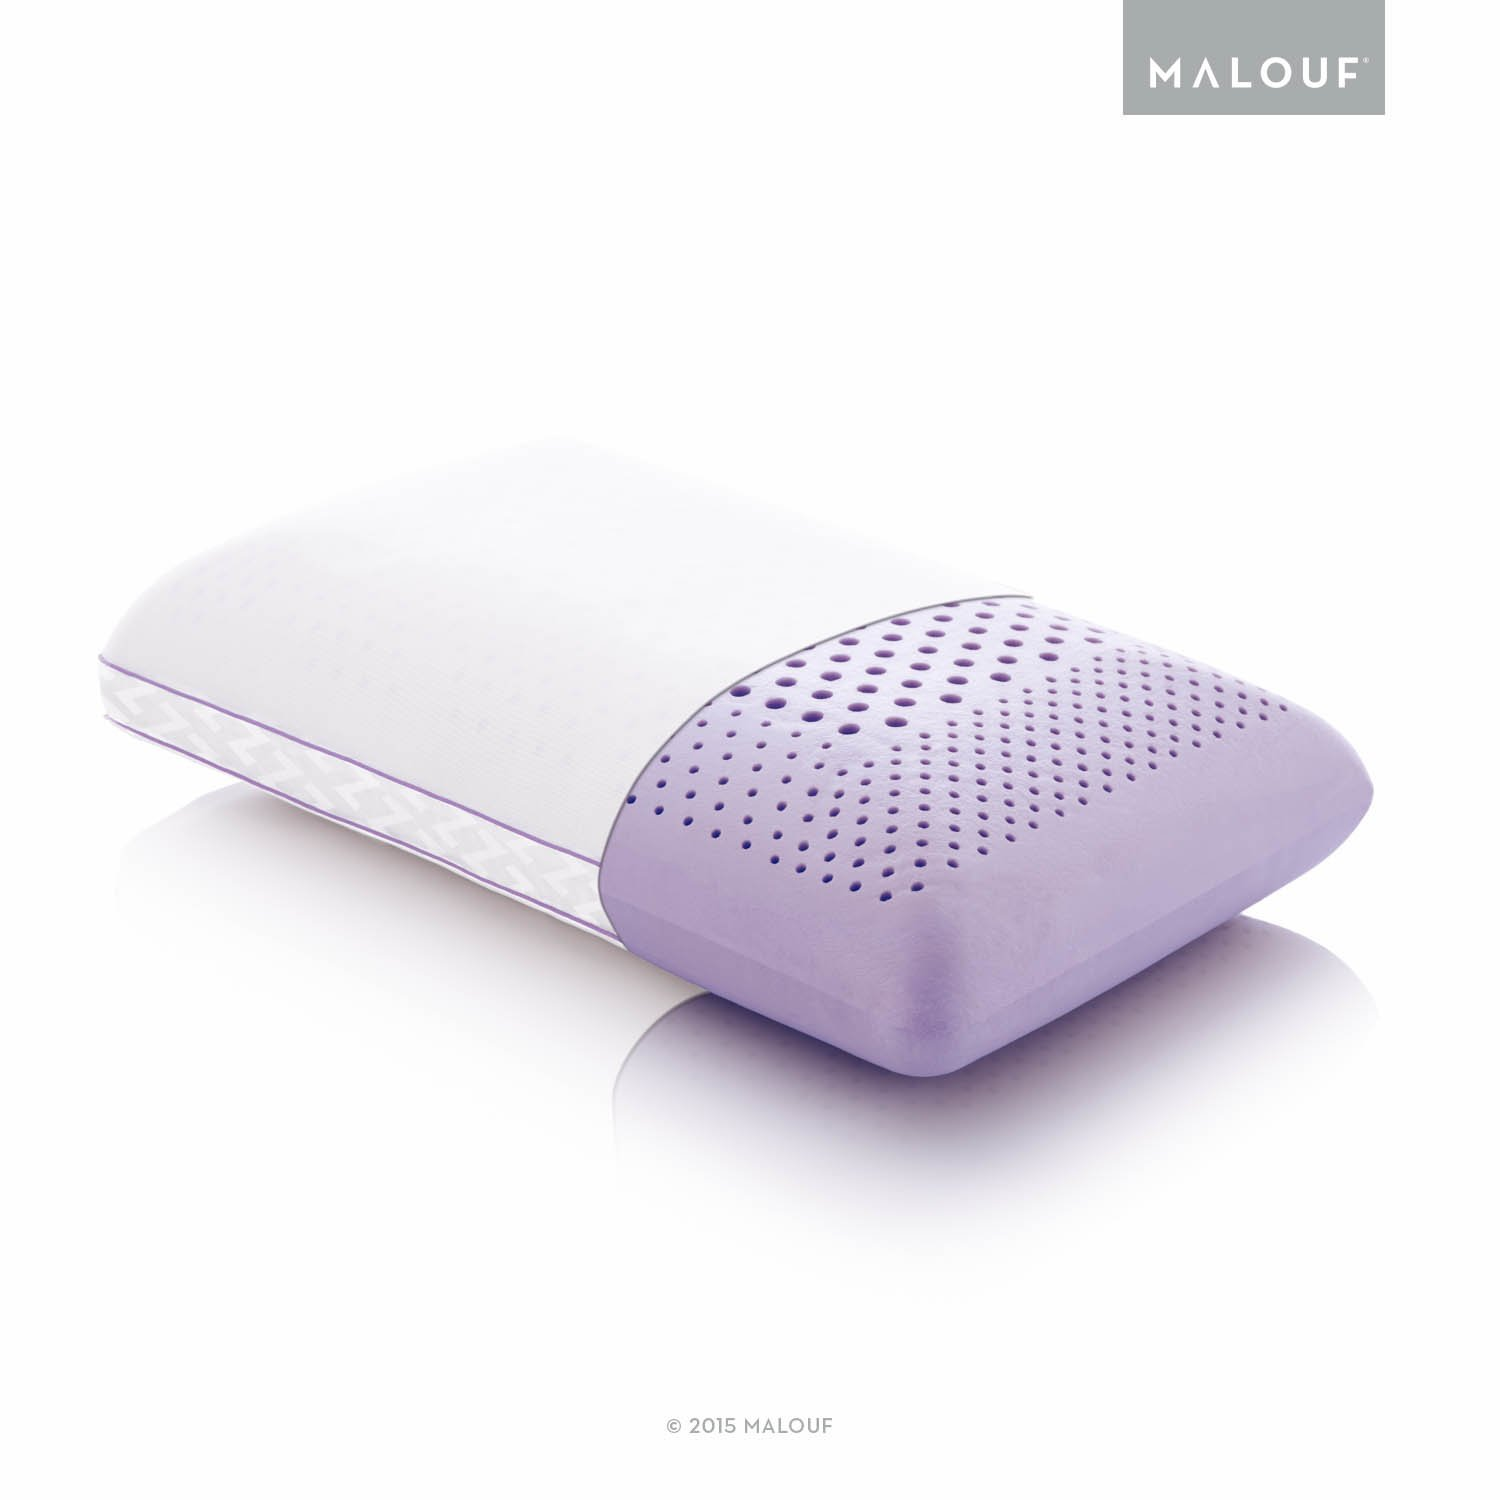 Z ZONED DOUGH Memory Foam Pillow Infused with Real Lavender - Natural Lavender Oil Aromatherapy Pillow Spray Included - King by MALOUF